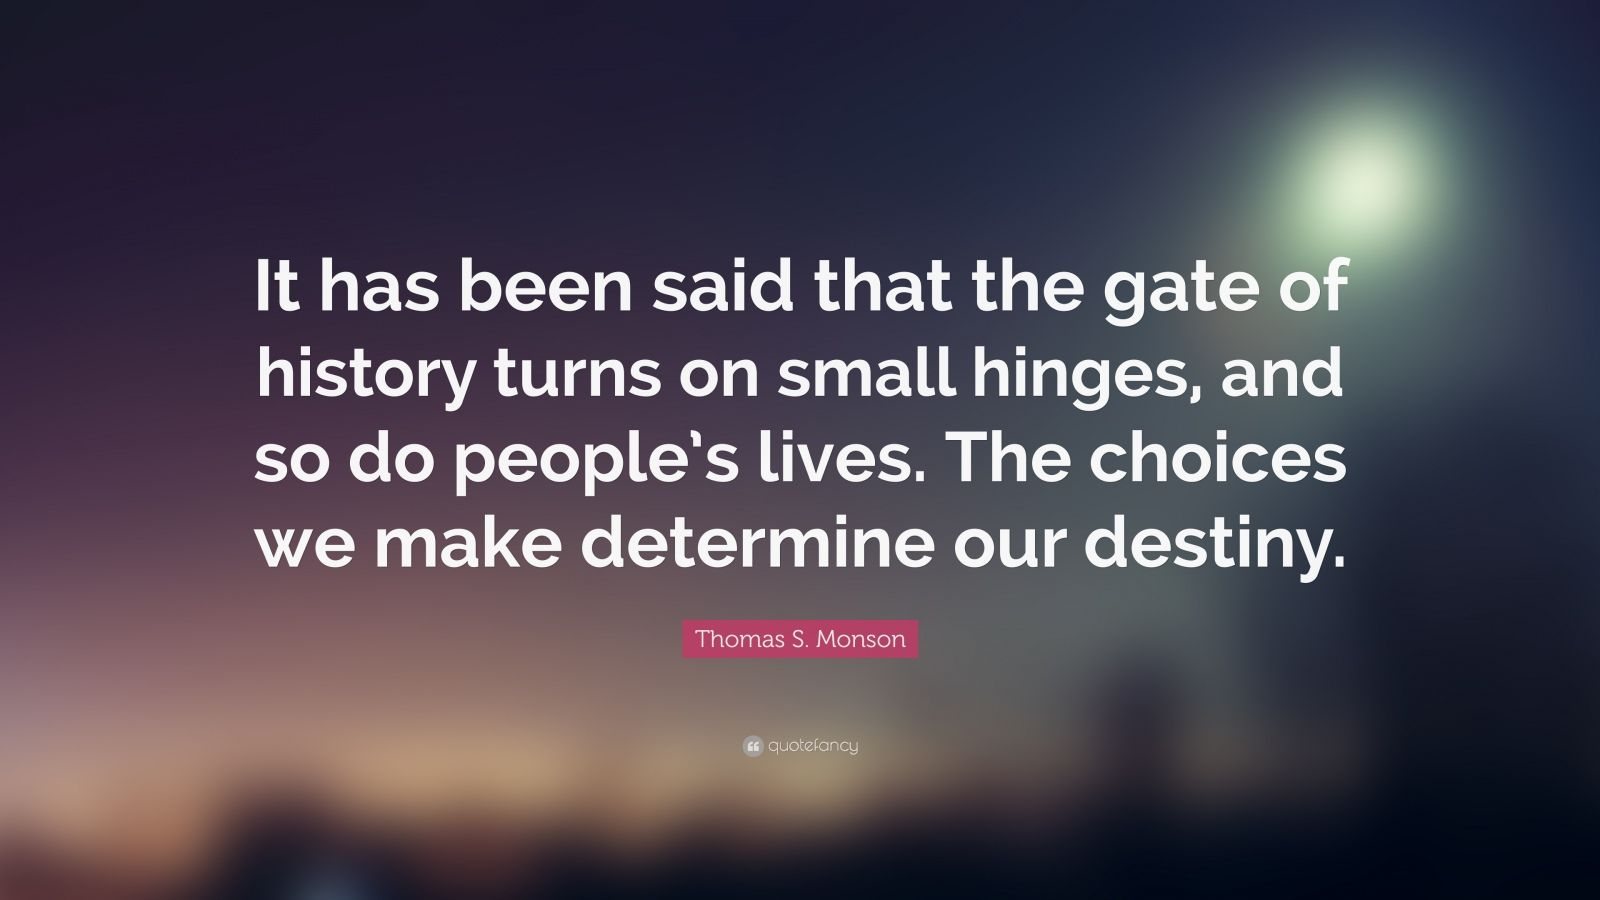 """Thomas S. Monson Quote: """"It has been said that the gate of history turns on small hinges, and so do people's lives. The choices we make determine our destiny."""""""